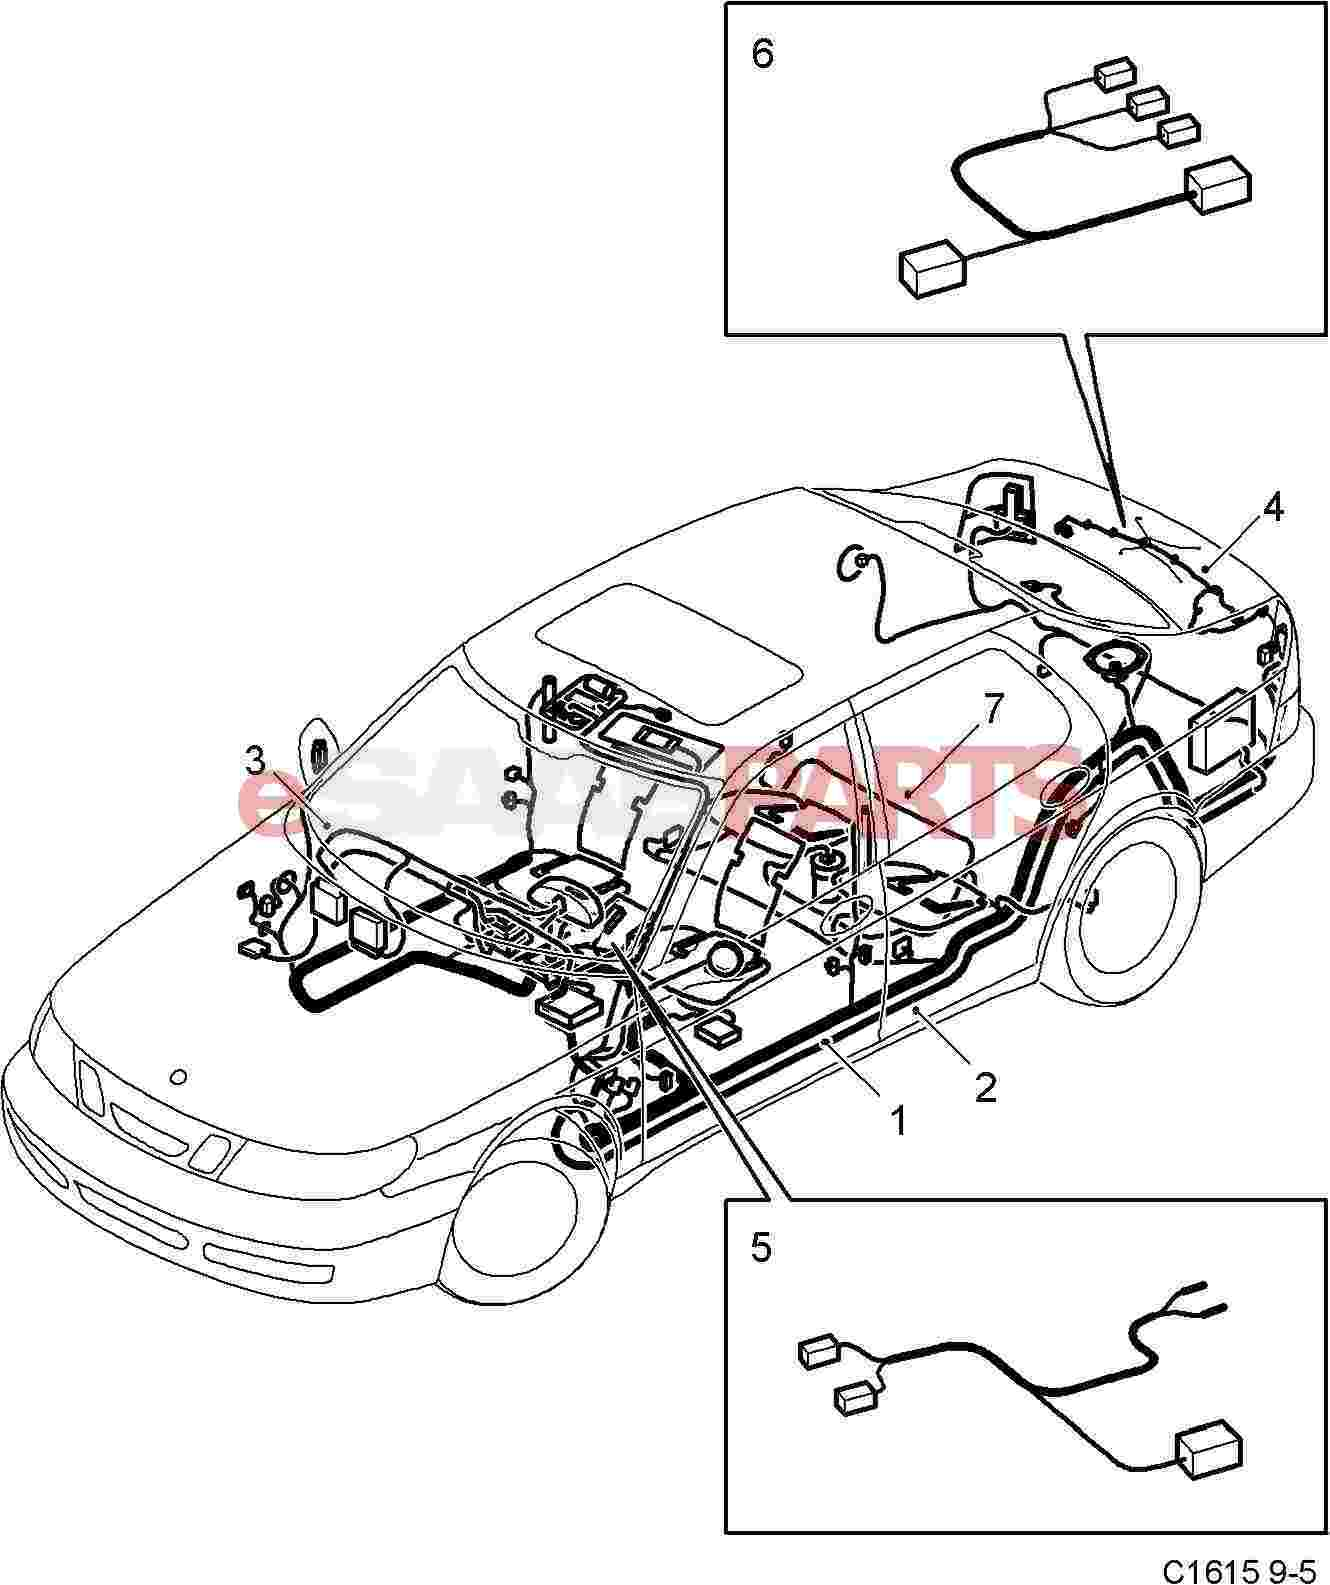 12757092  Saab Cable Harness